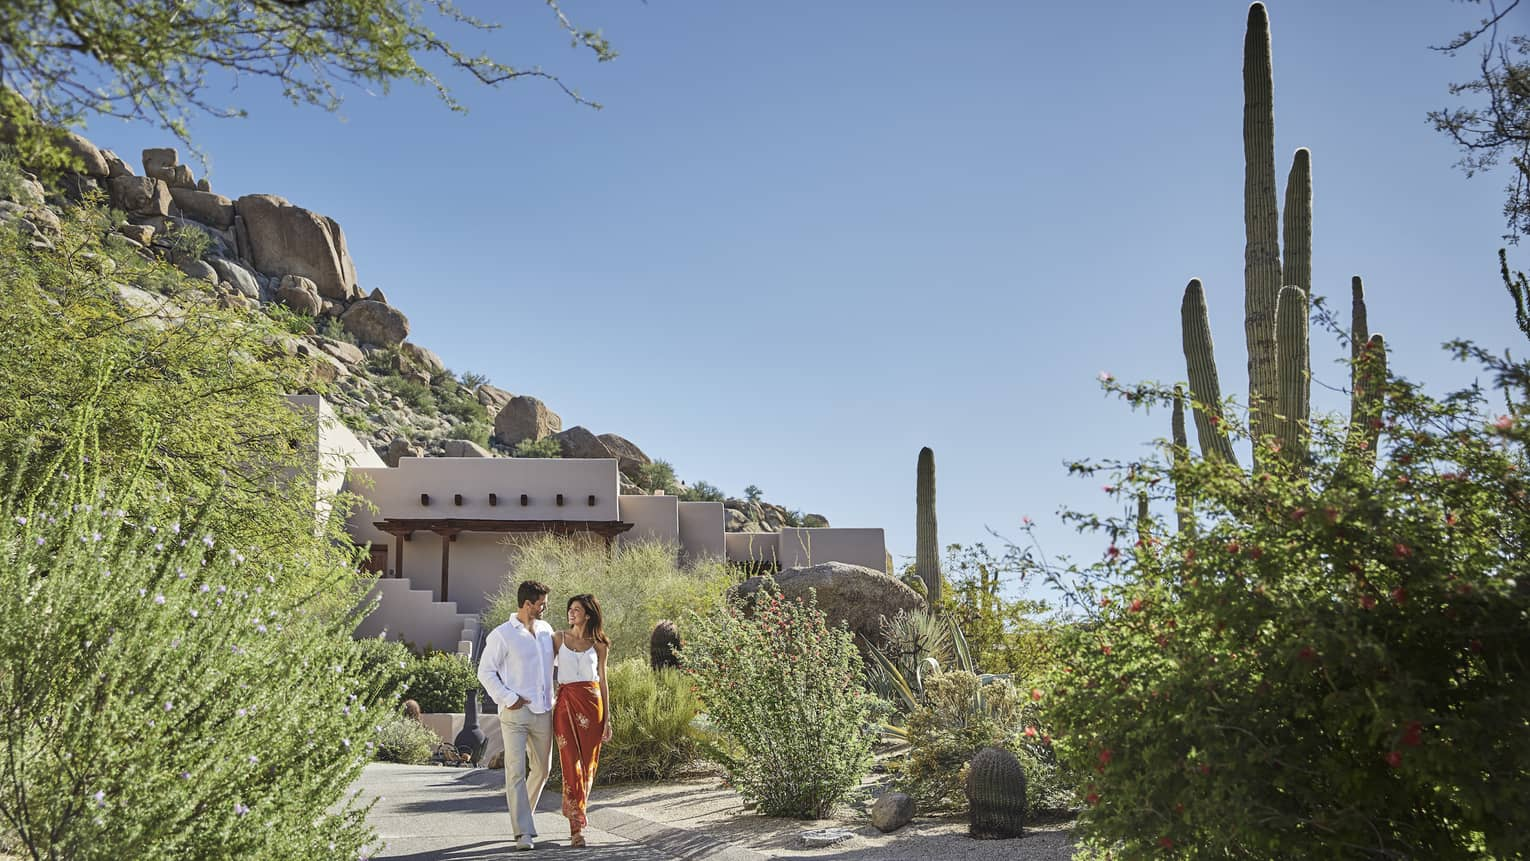 Couple walk along sunny desert garden path near tall cactus plants